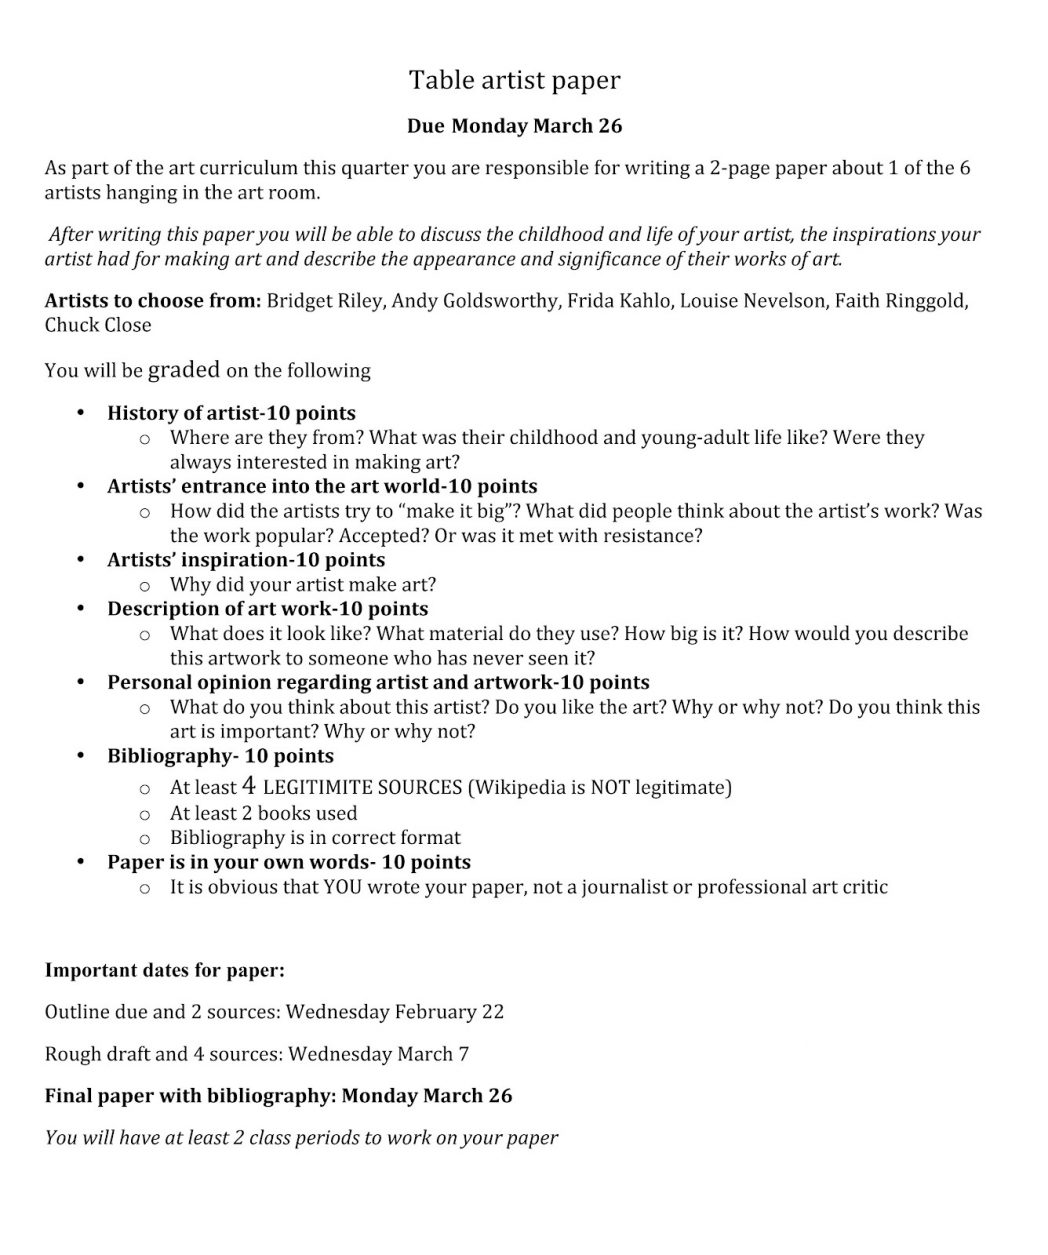 002 Art History Essays Uncategorized Impressionisms Writing Research Paper Papers Leaving20 Staggering Example Outline Full